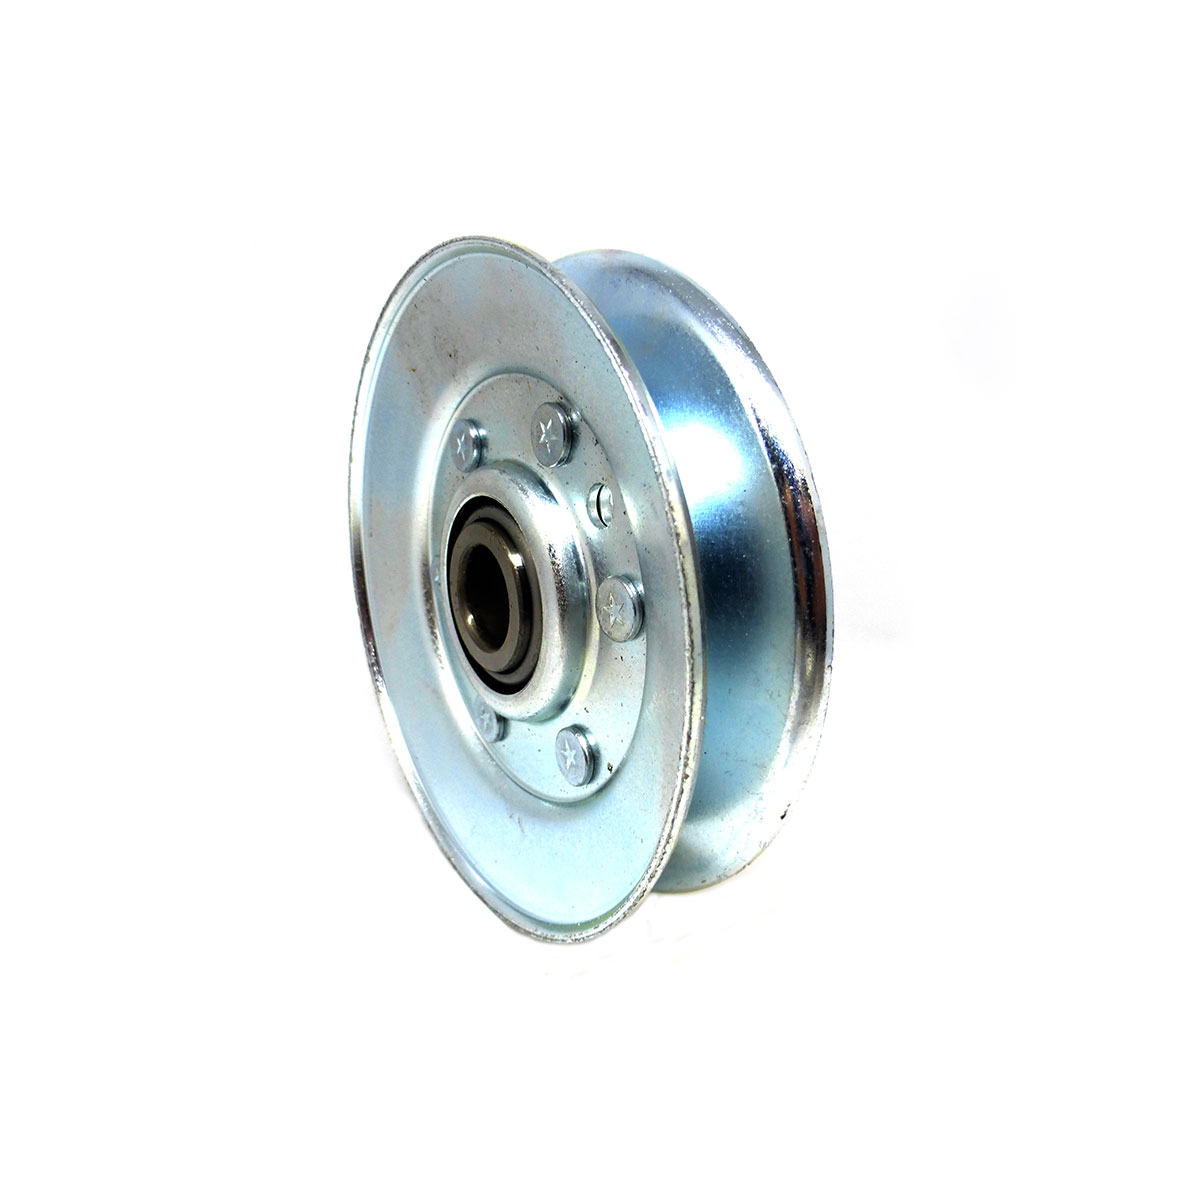 hight resolution of 30234 dixie chopper v idler pulley